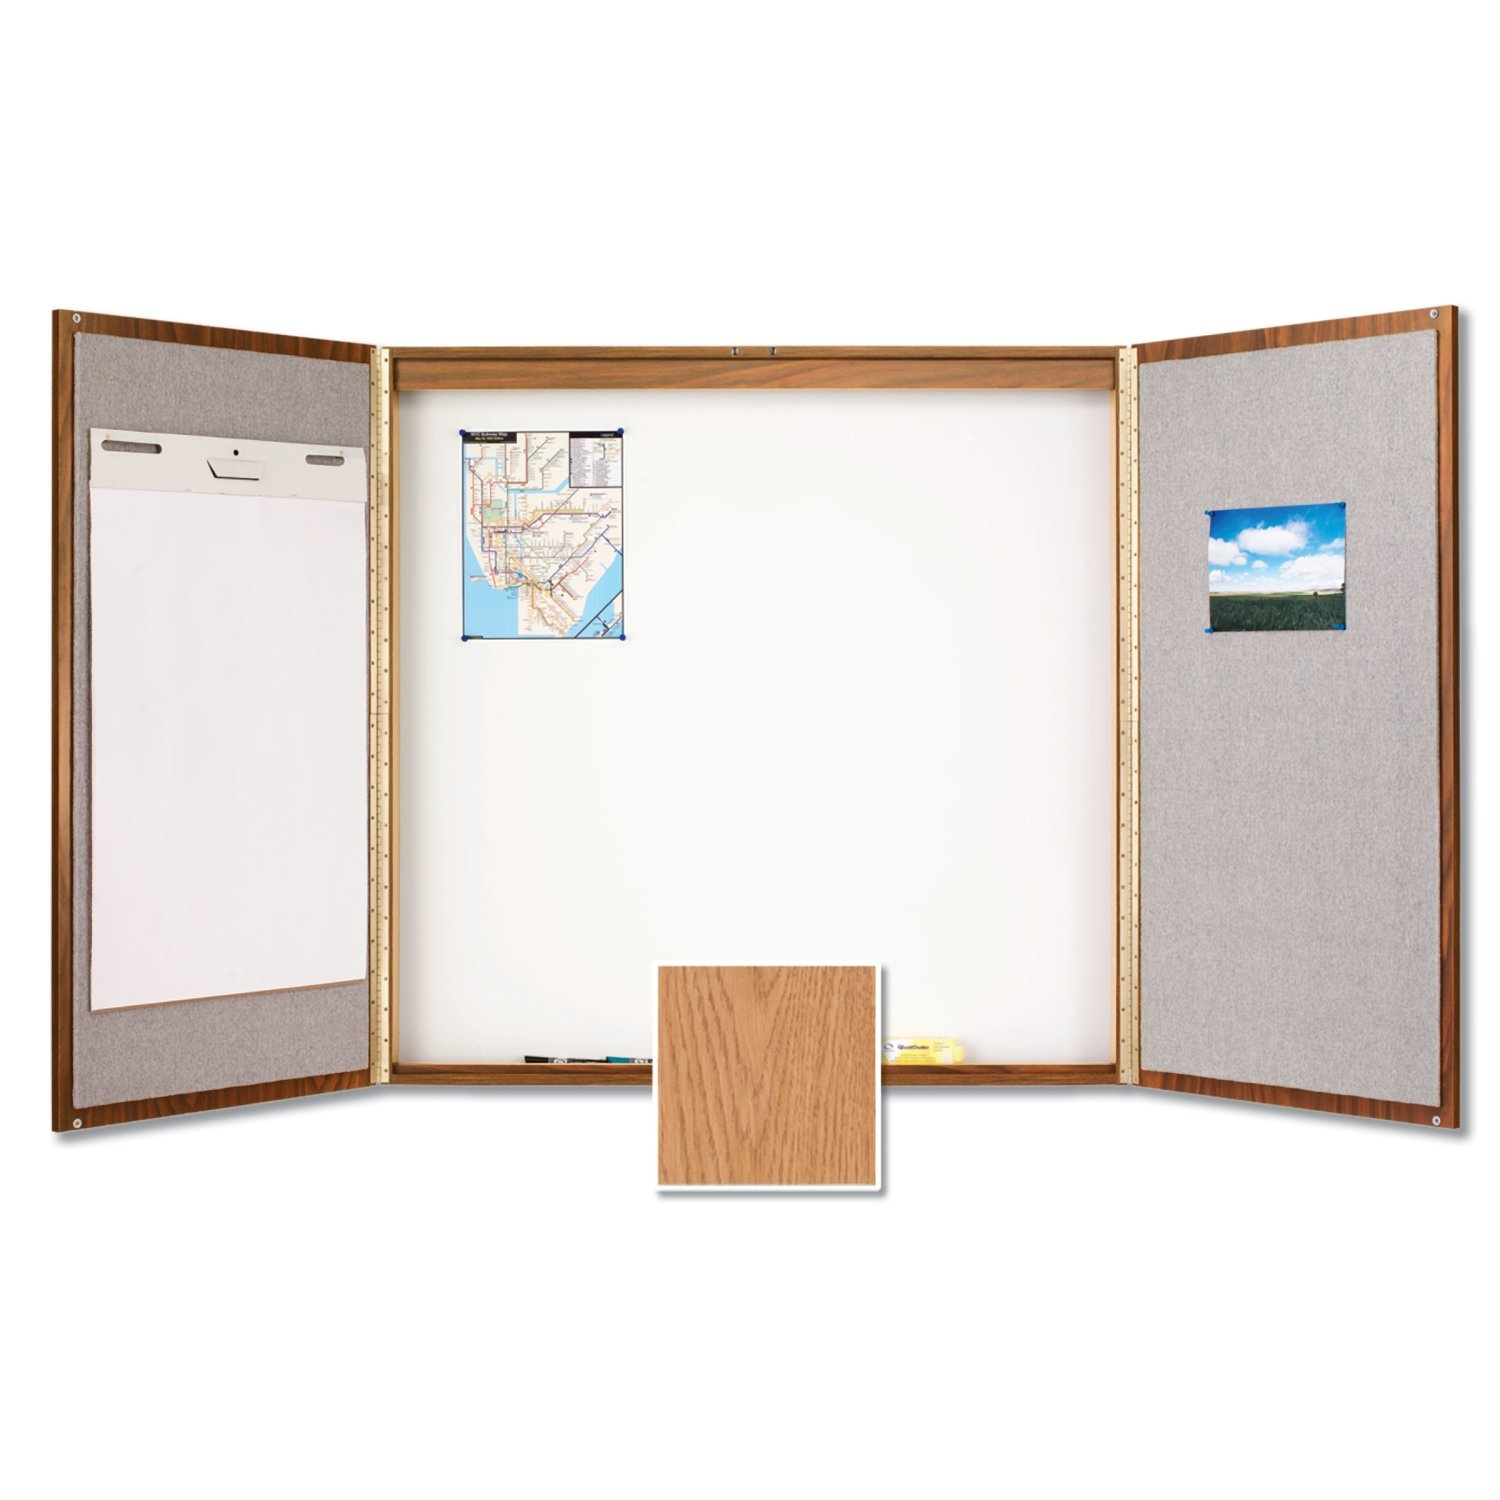 Amazon.com : Quartet Laminate Conference Room Cabinet, 4u0027 X 4u0027, Whiteboard/Bulletin  Board Interior, Oak Finish (838) : Home Office Cabinets : Office ...